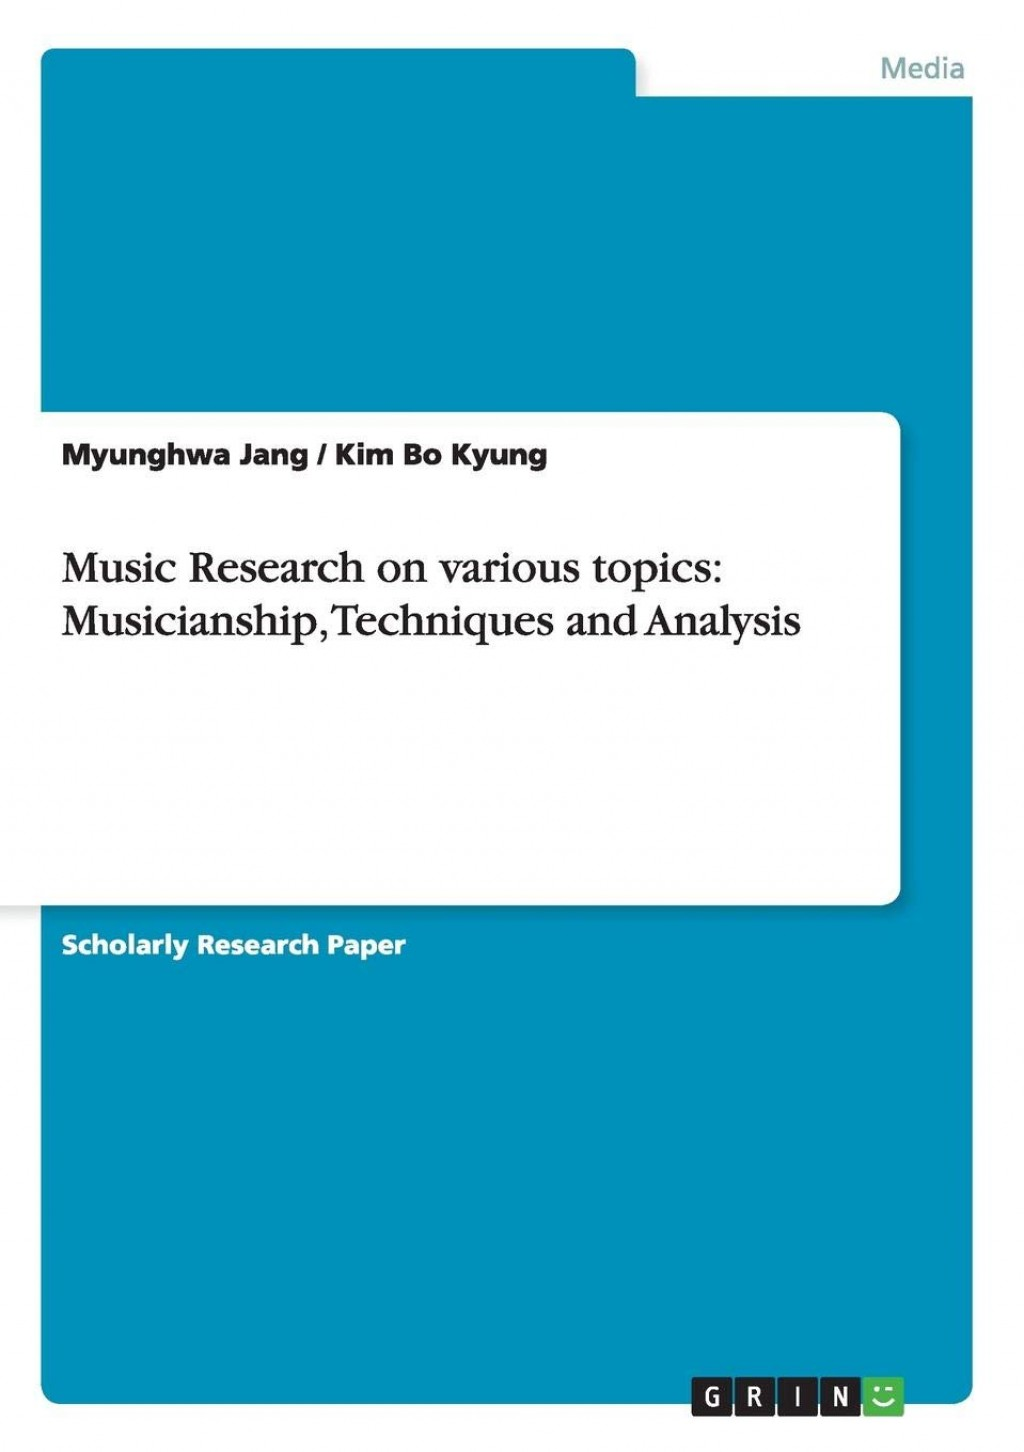 019 Popular Music Research Paper Topics Fantastic Large